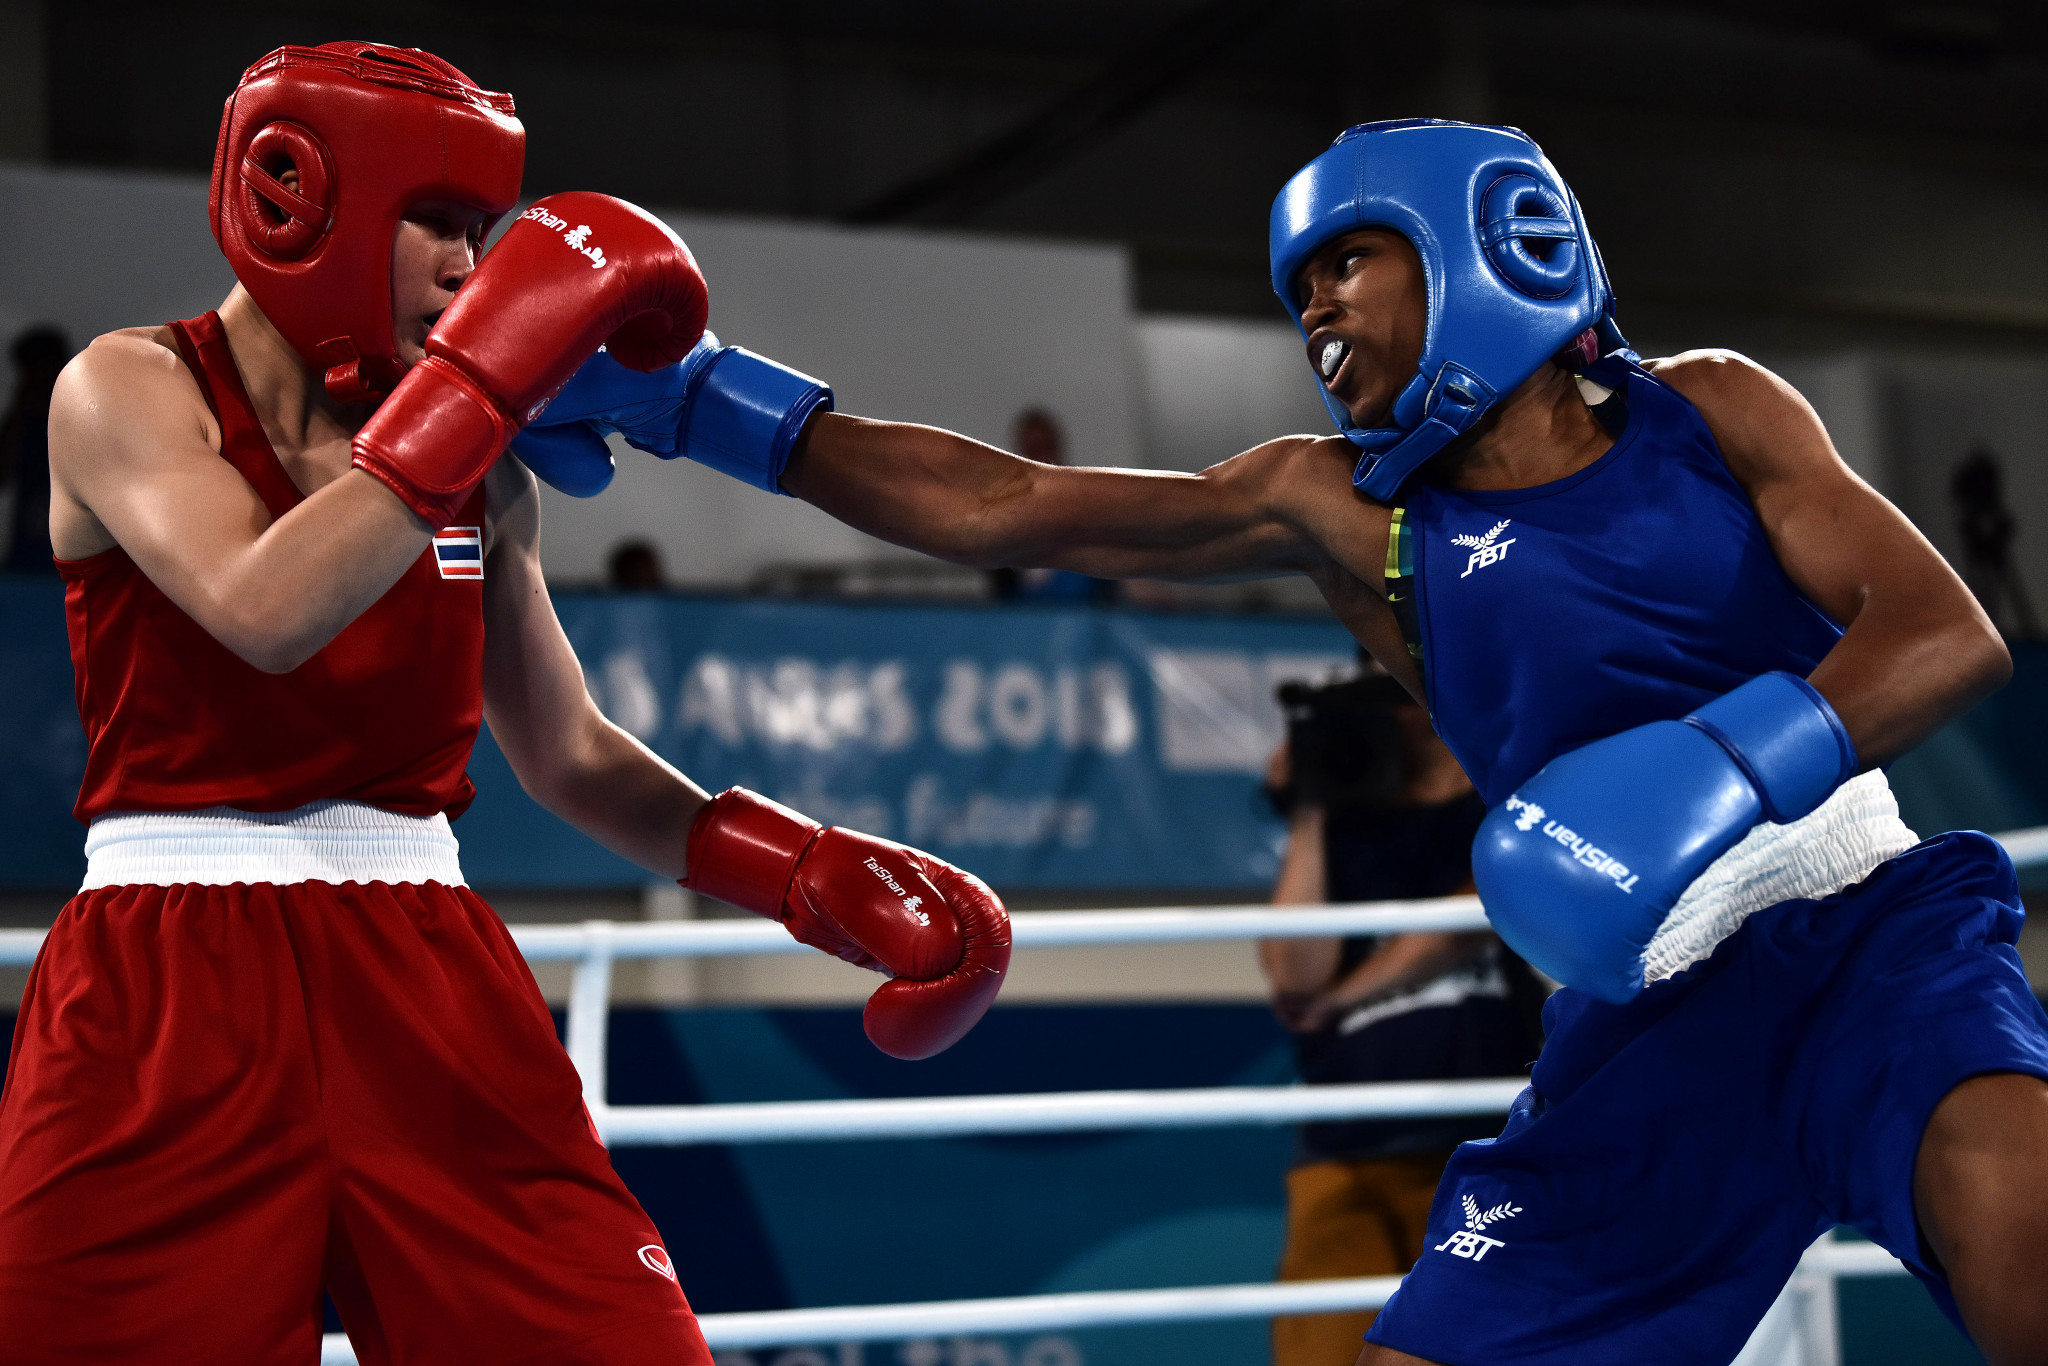 British boxers earned two gold medals on the final day of the Games ©Getty Images